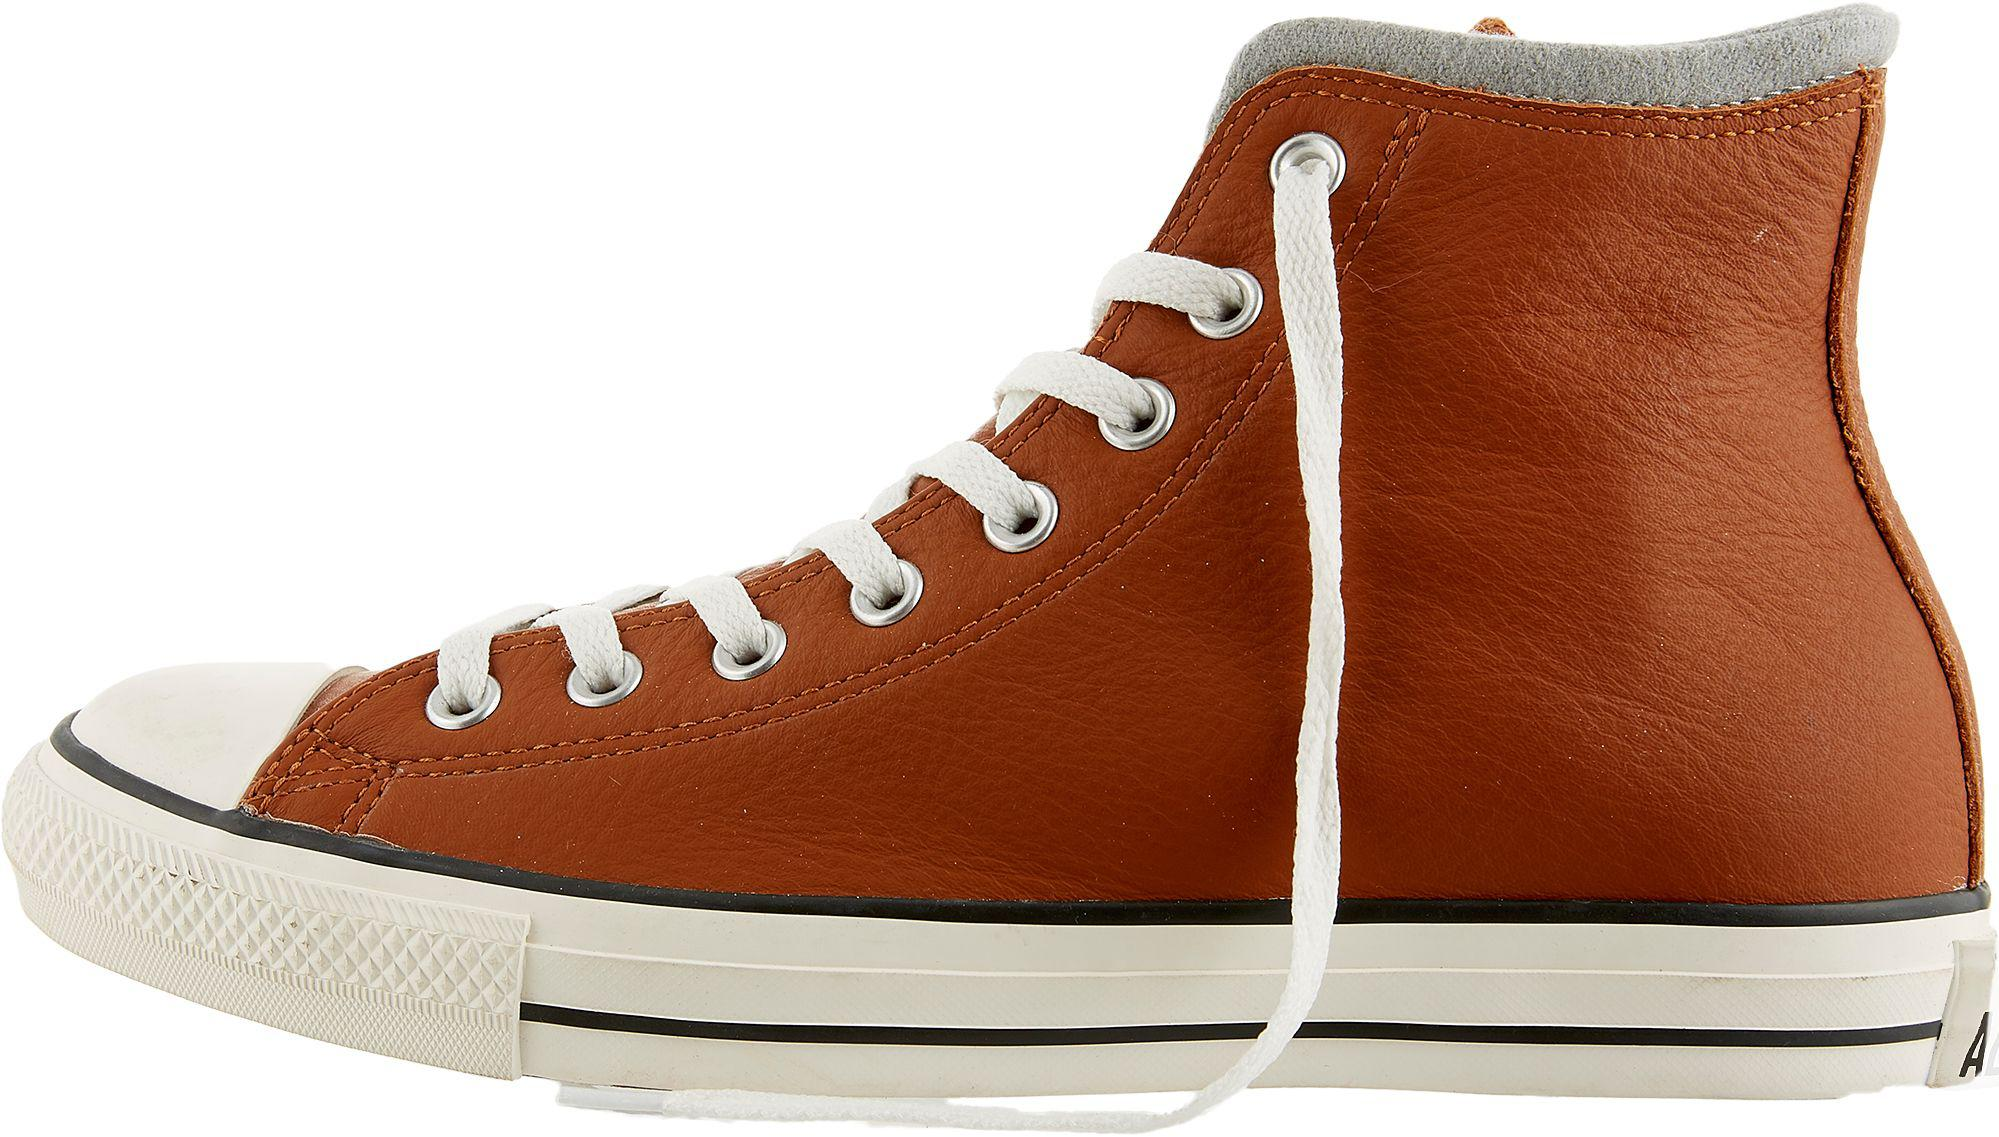 a930765e28f3c0 Lyst - Converse Chuck Taylor All Star Leather Wool Hi-top Casual ...